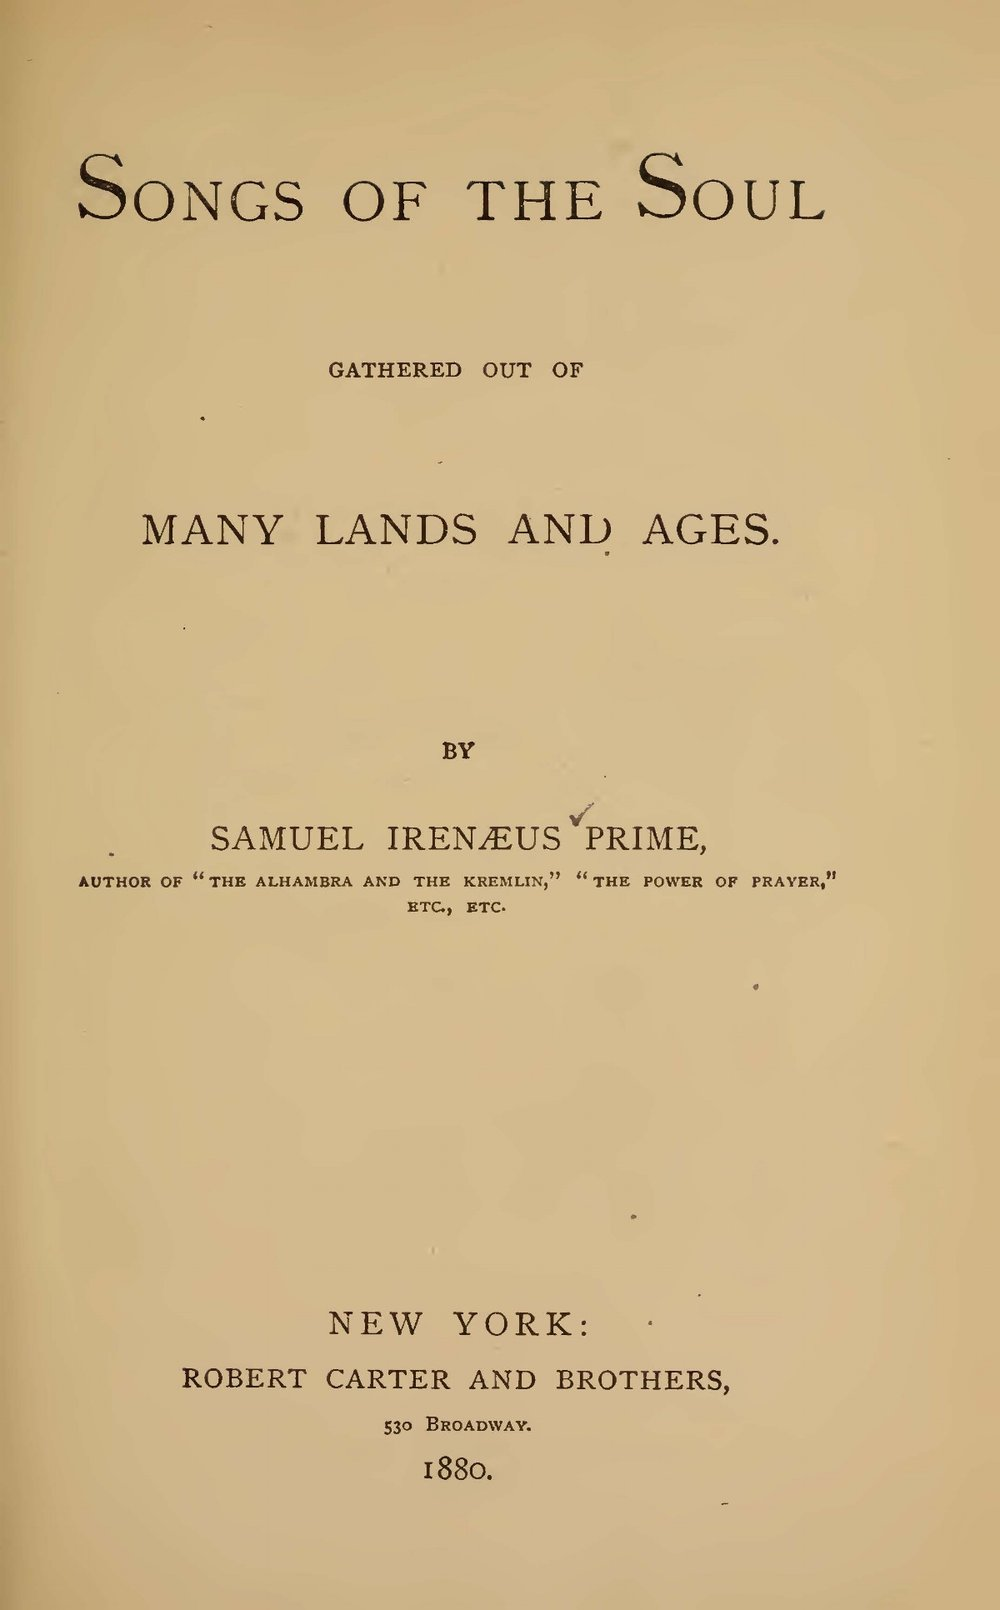 Prime, Samuel Irenaeus, Songs of the Soul Title Page.jpg